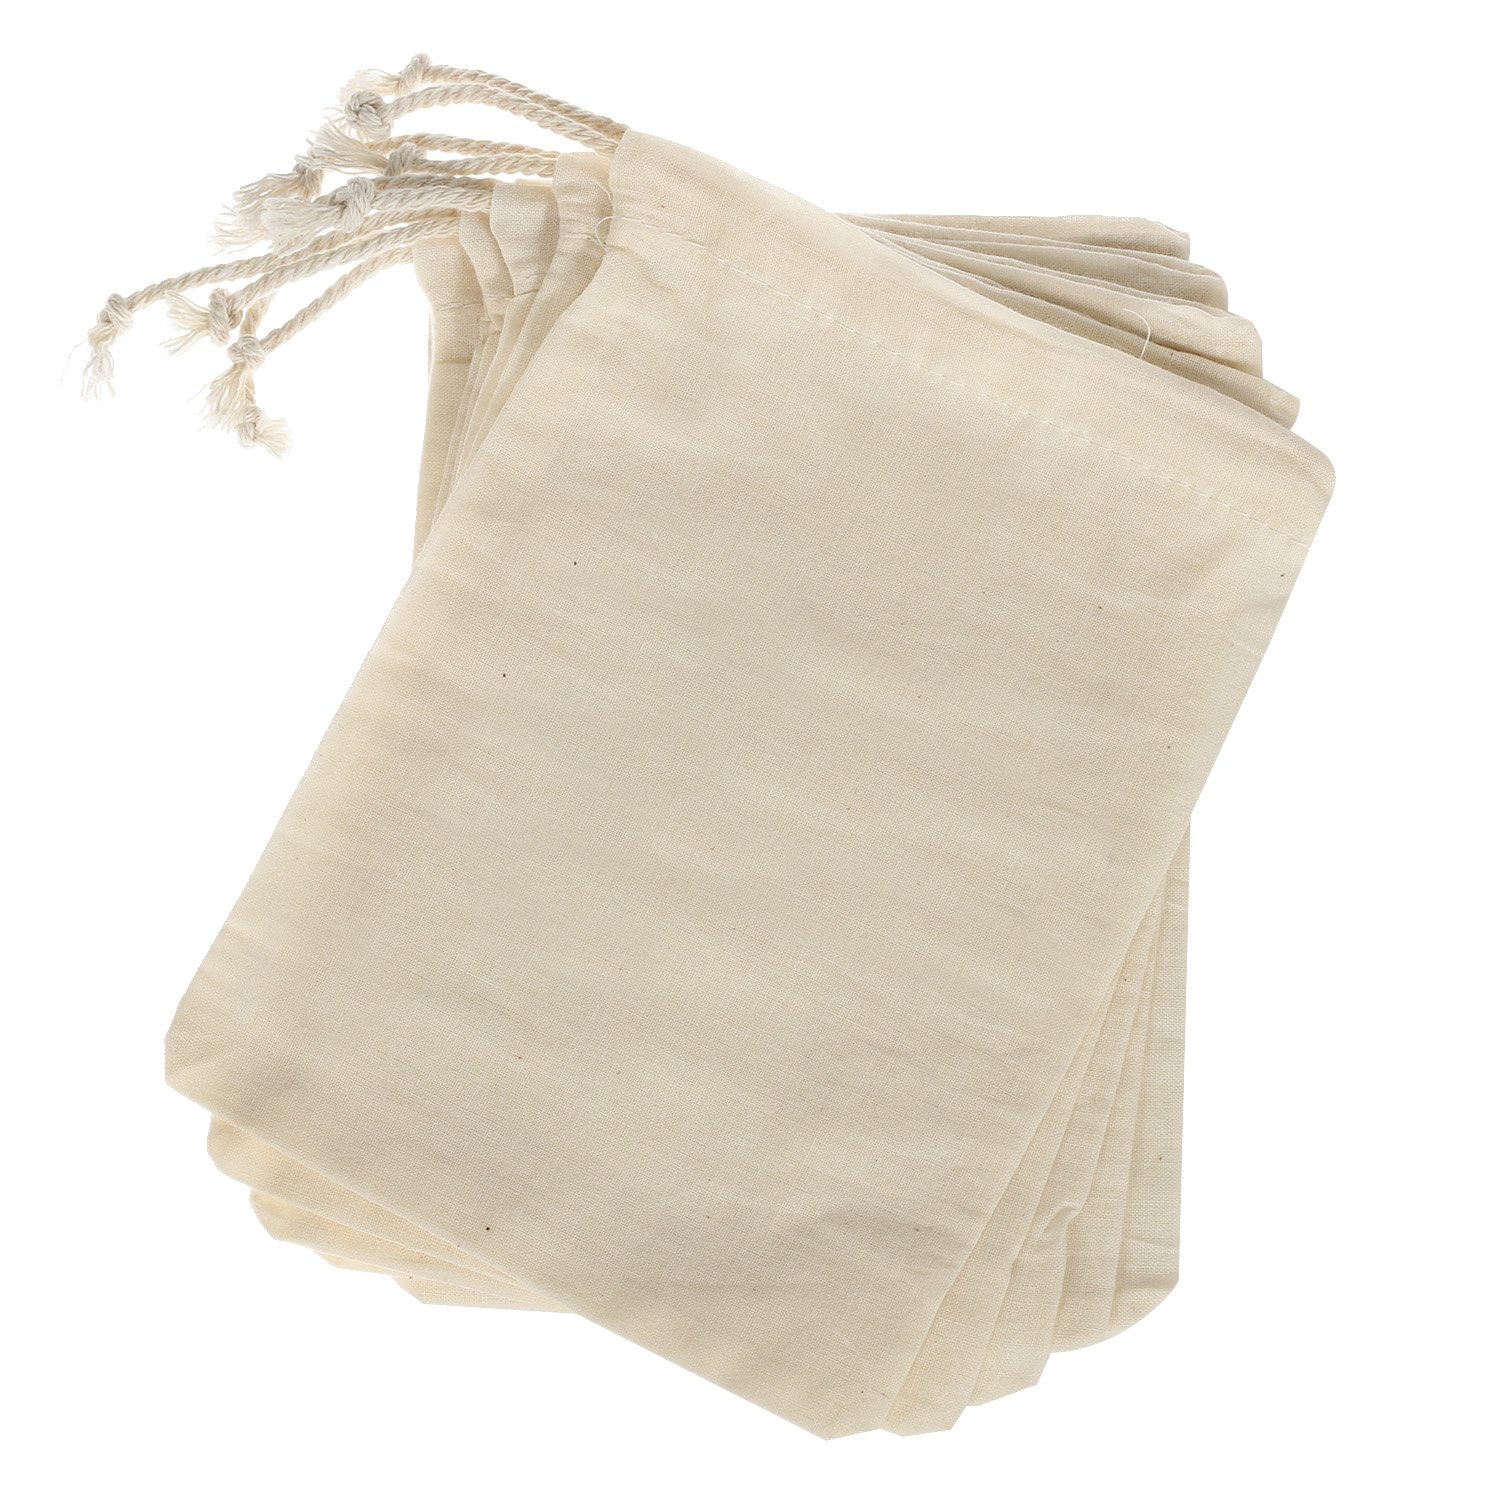 Ling's moment 25pcs 5x7 Inch Natural Clear Cotton Muslin Favor Bags for Wedding Bridal Shower Bachelorette Party Favor Gifts